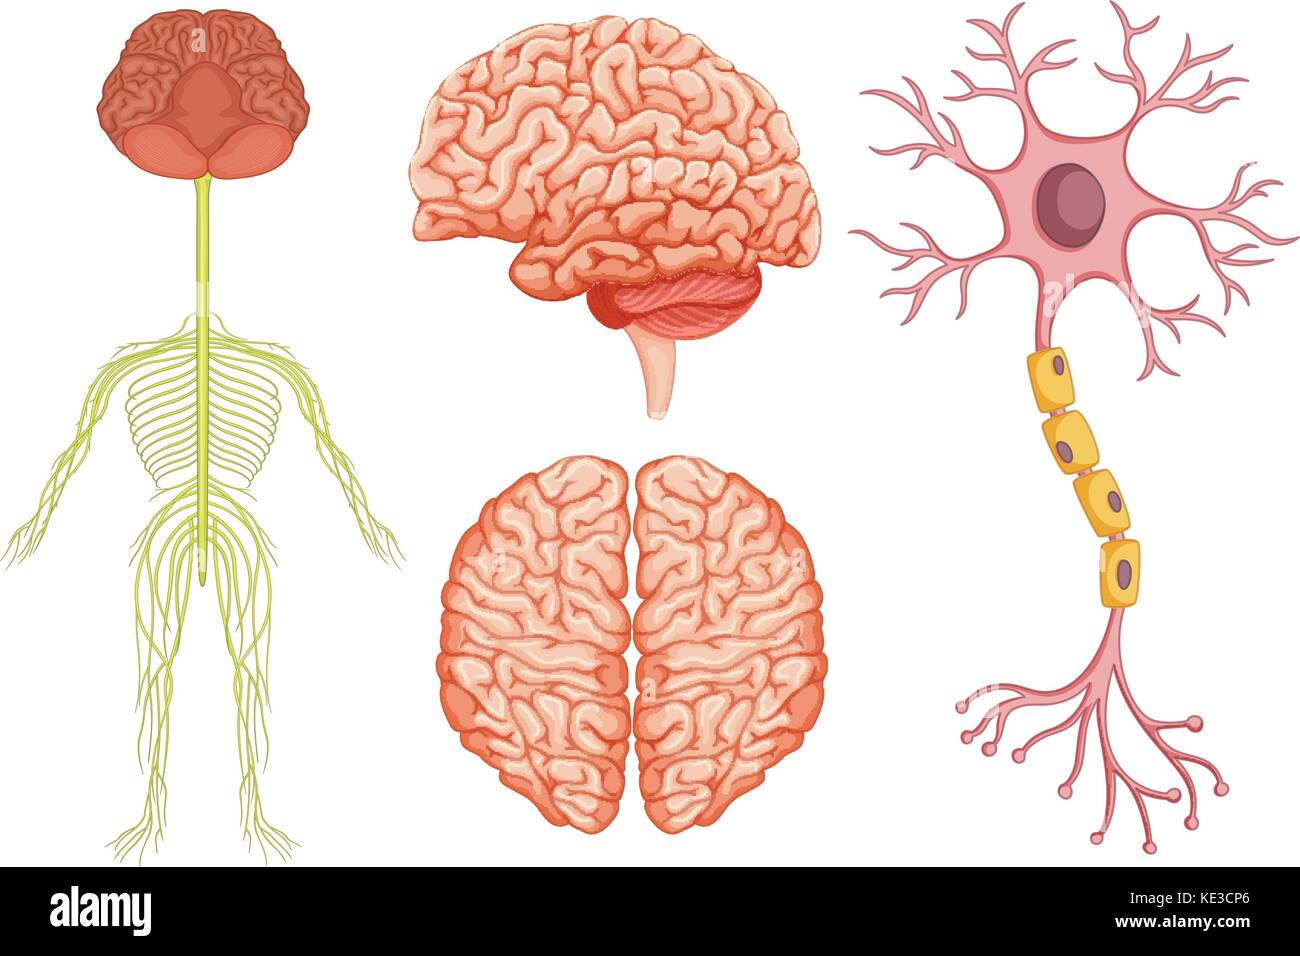 Human brain and stem cell illustration - Stock Image